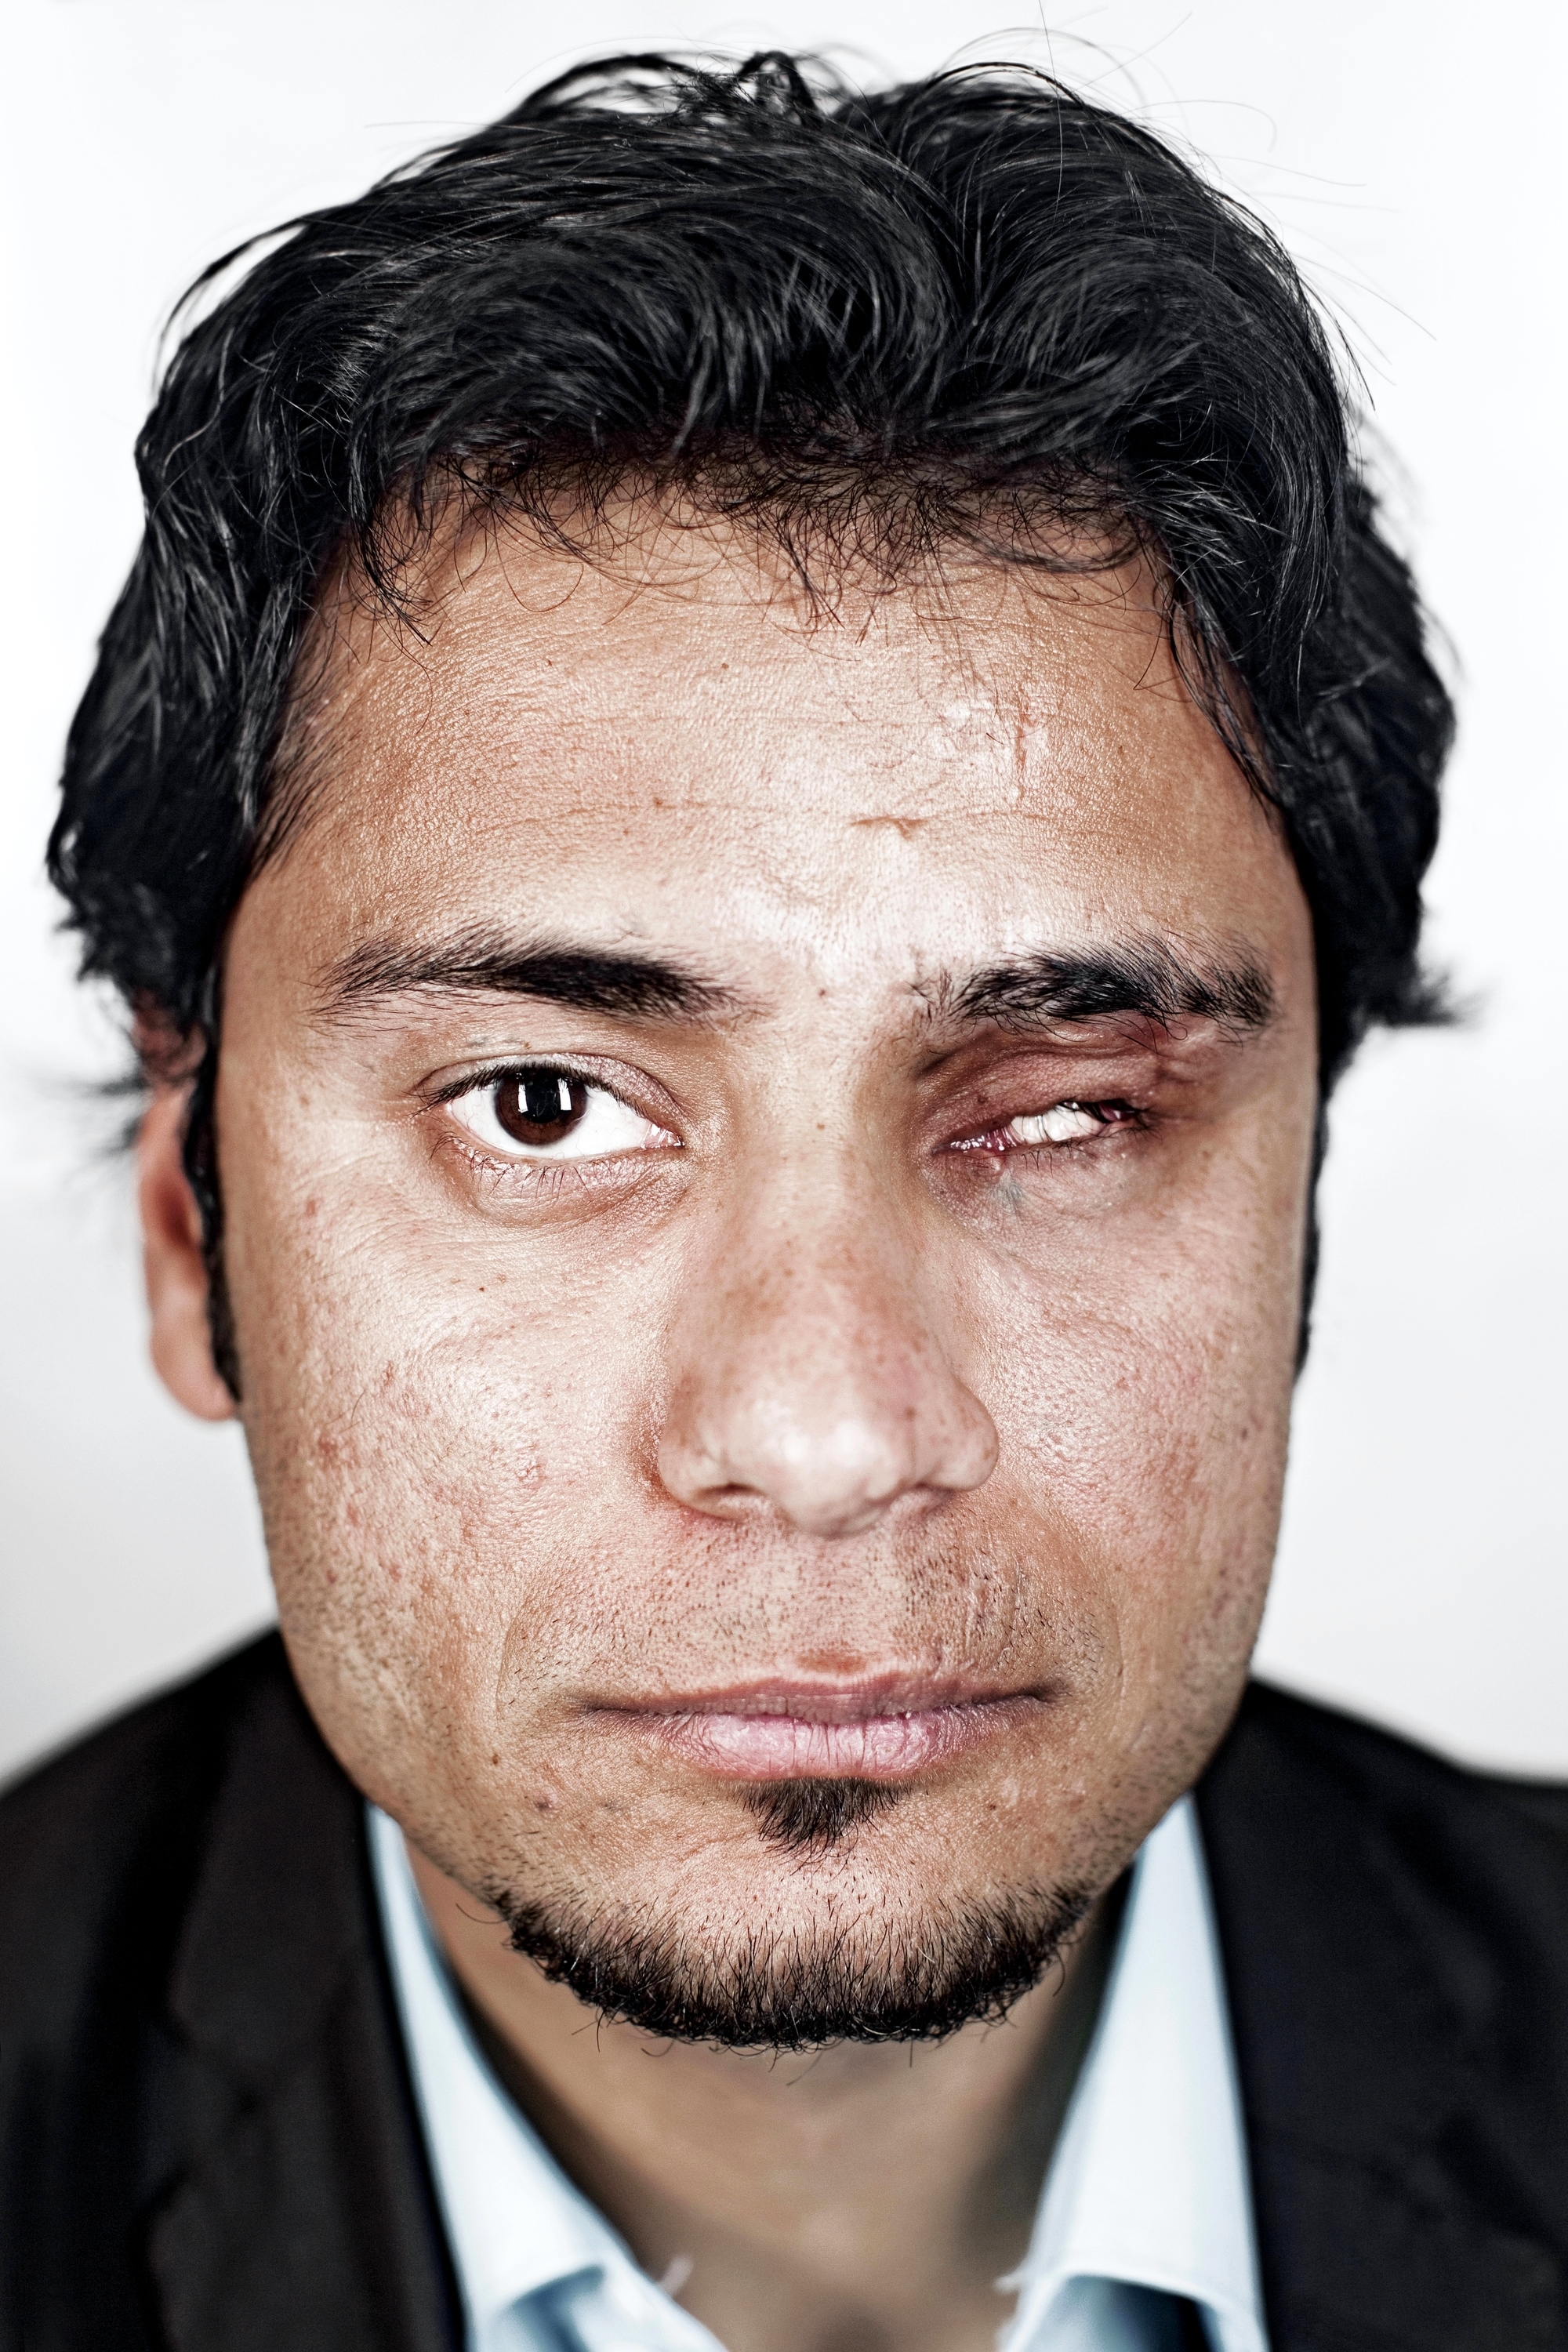 Riyadh Mahdi is 25 years old. He is originally from Fallujah. He was a policeman, working at a checkpoint when he was injured. His flashlight had been duplicated and militants hid a bomb inside the double. When he turned on the light it exploded in his left hand. His hand and forearm were blown off and he was blinded in his left eye.